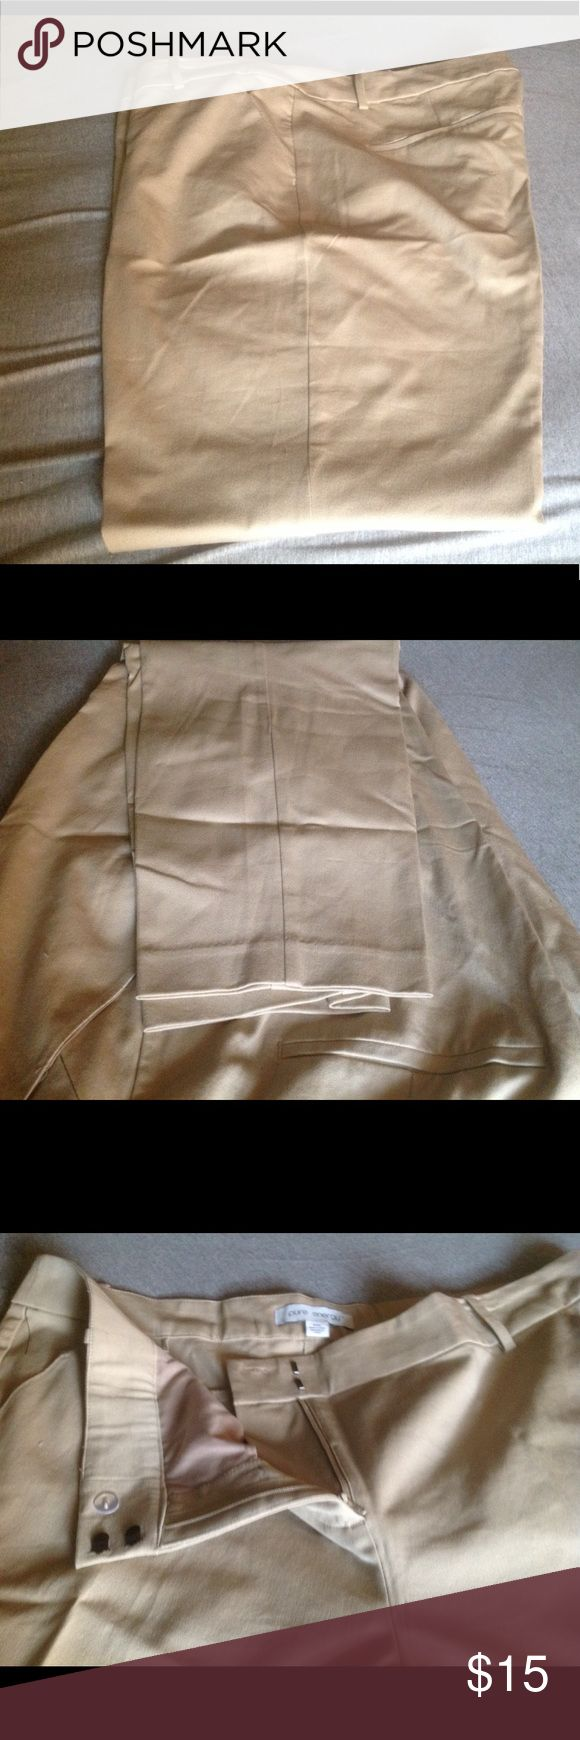 "NWOT khaki slacks 24W New, khaki slacks. Awesome stretch to them for comfort while sitting or bending. Flat front faux back pocket. Size 24W by pure energy 28"" inseam with tapered hem Pure Energy Pants Ankle & Cropped"